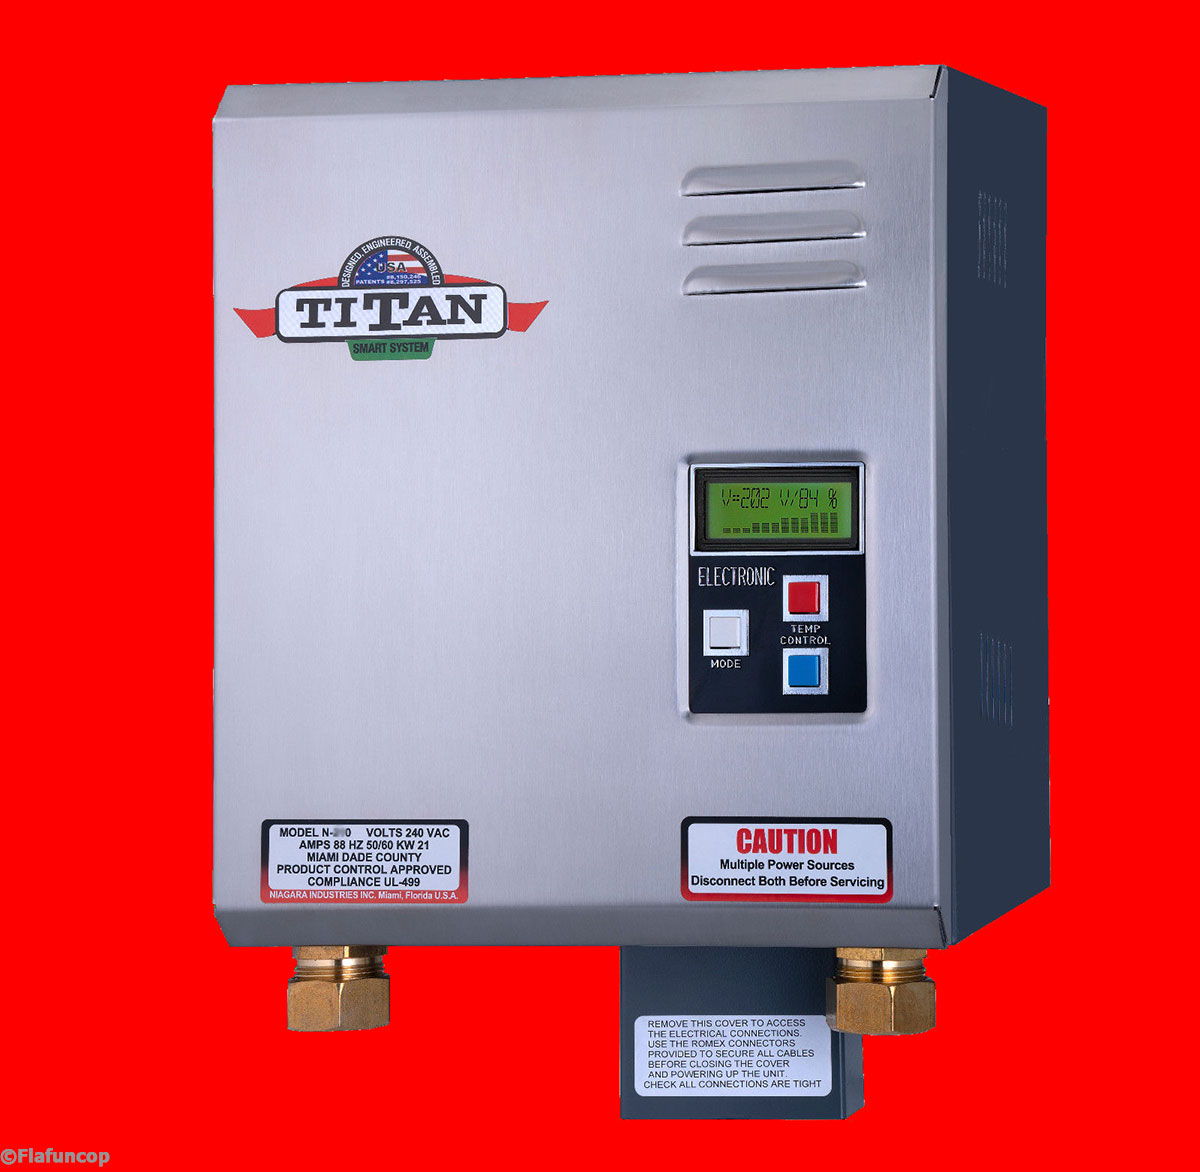 Titan N 270 Tankless Water Heater New For 2020 Free Same Day Priority Shipping 608938311580 Ebay